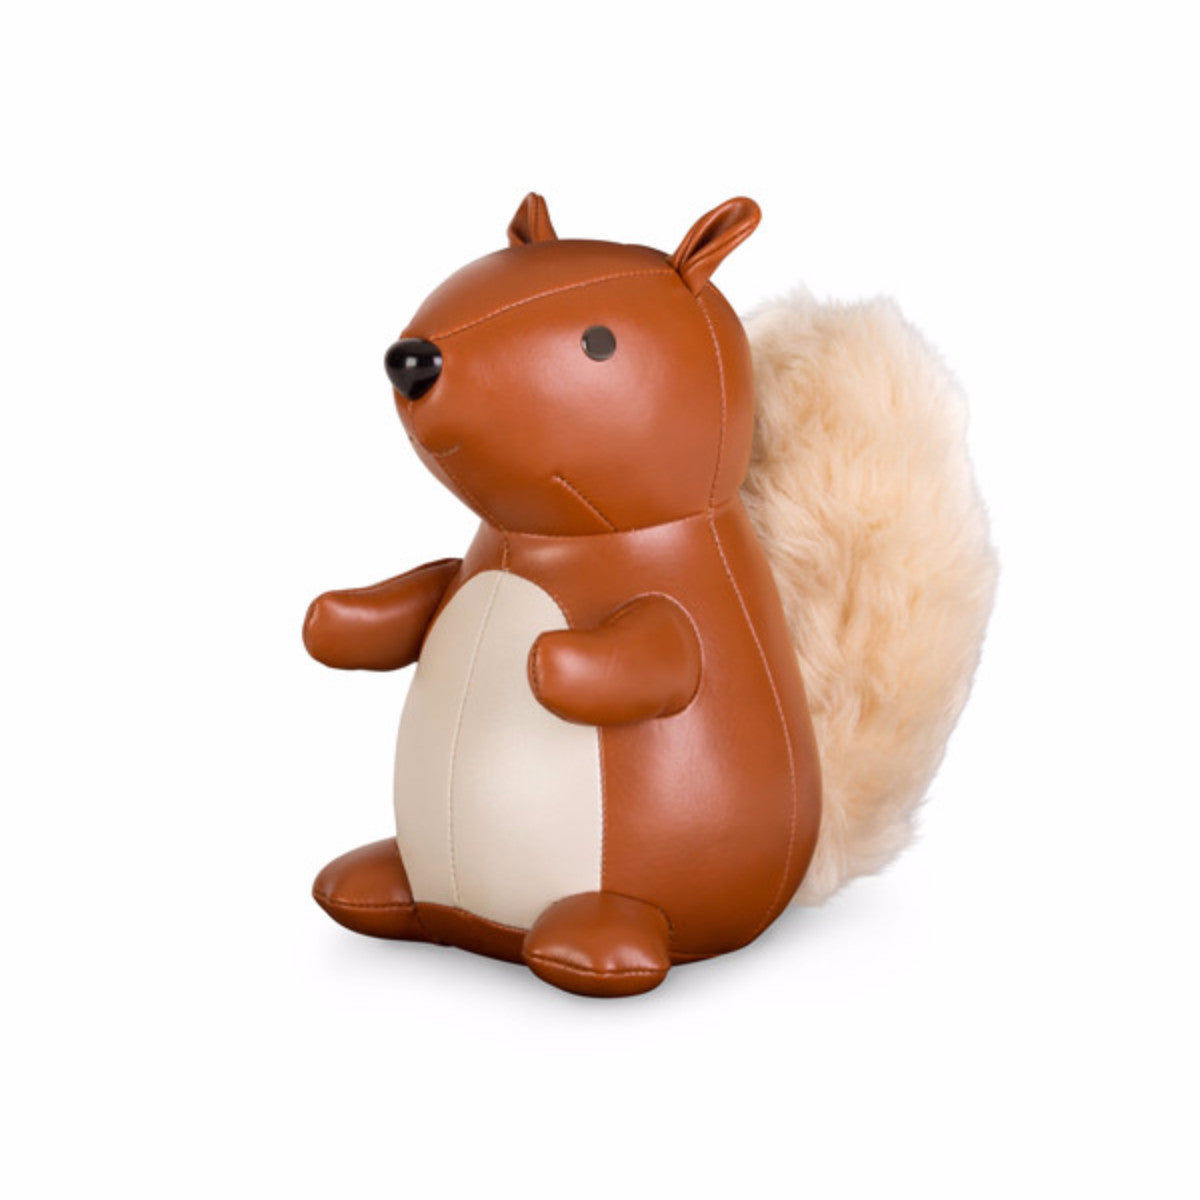 classic squirrel bookend by zuny  emmo home - classic squirrel bookend by zuny